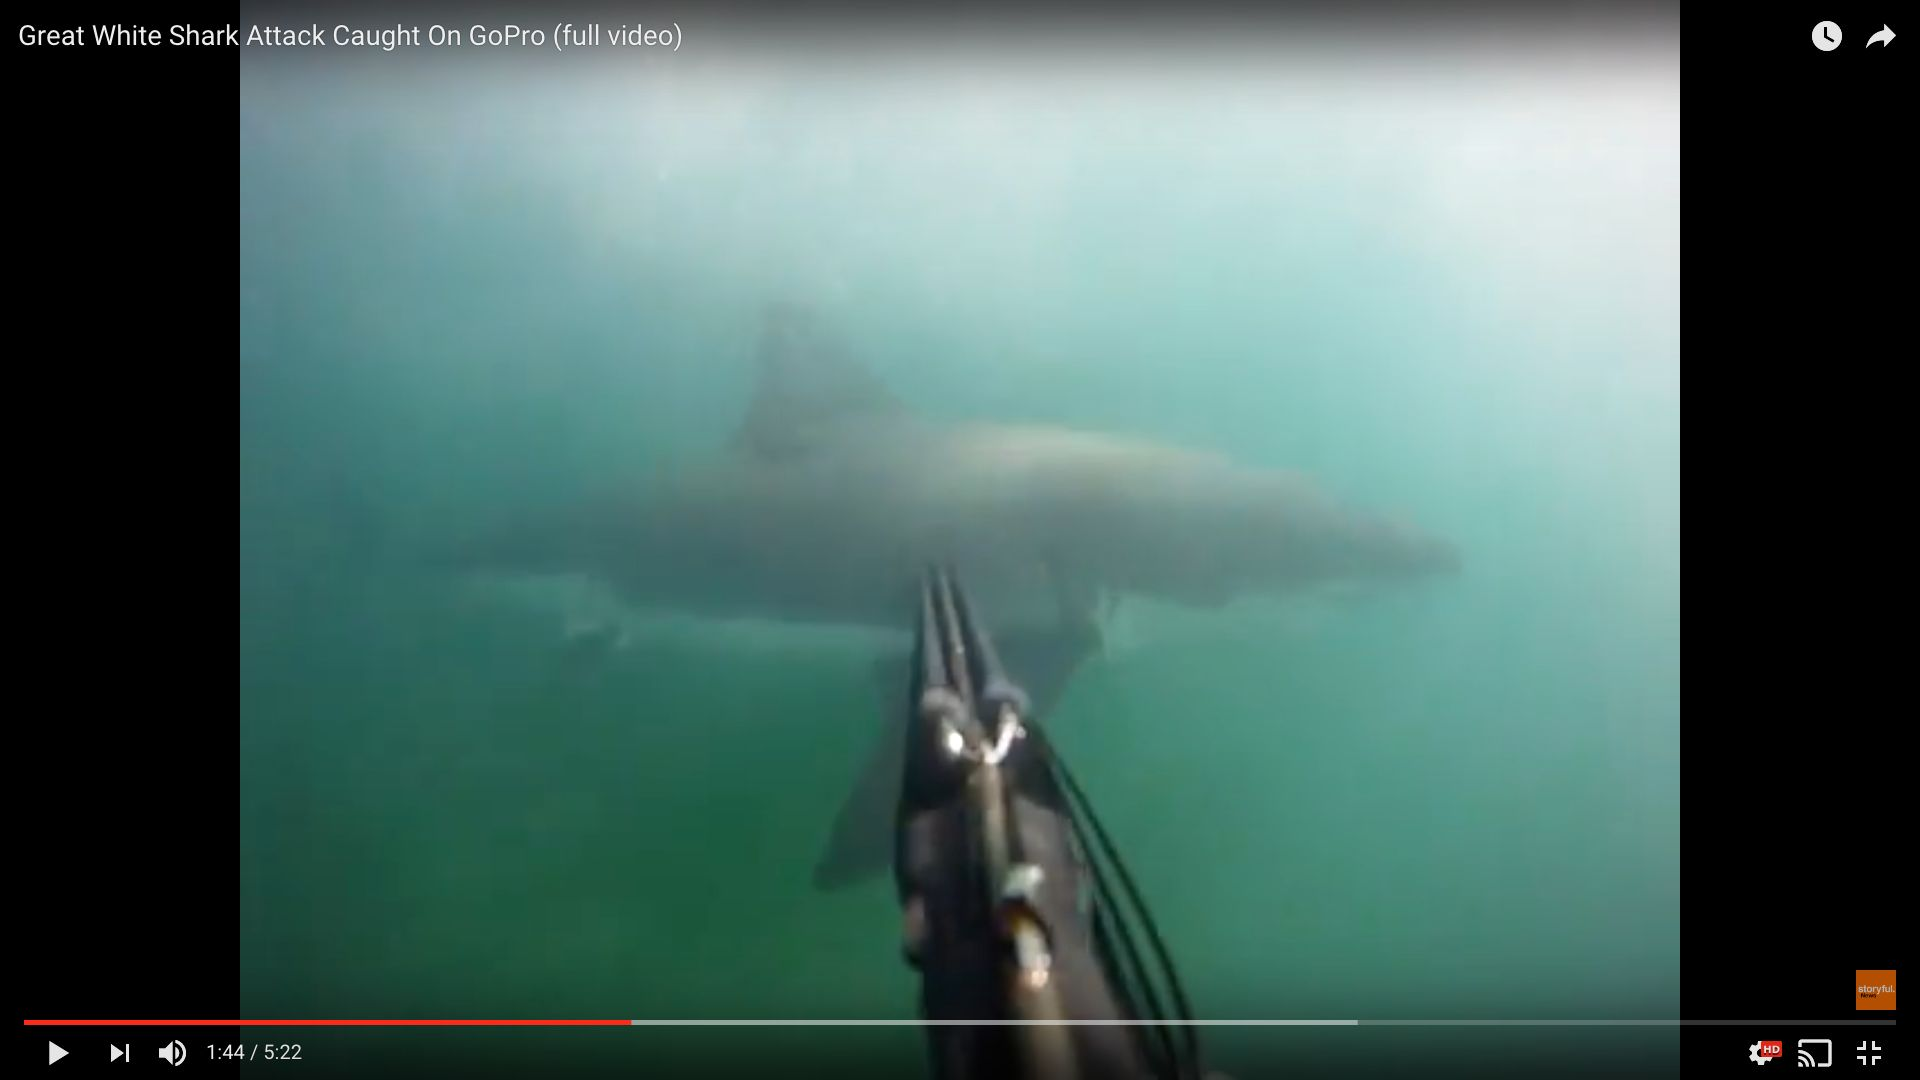 A GoPro camera, attached to the diver's speargun, captured the great white circlingpast him.